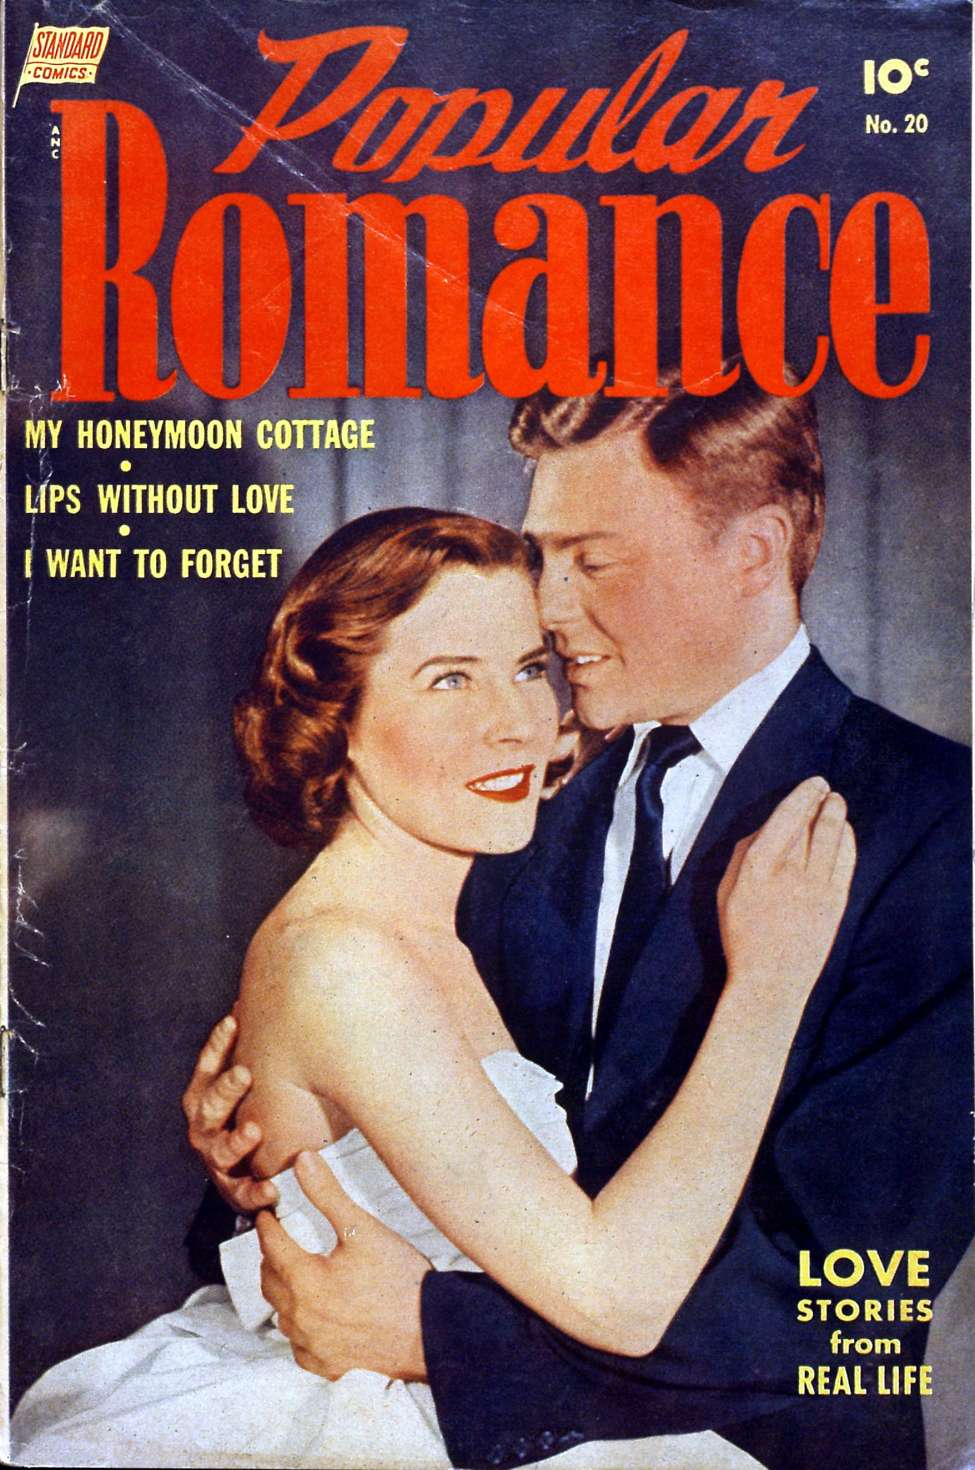 Comic Book Cover For Popular Romance #20